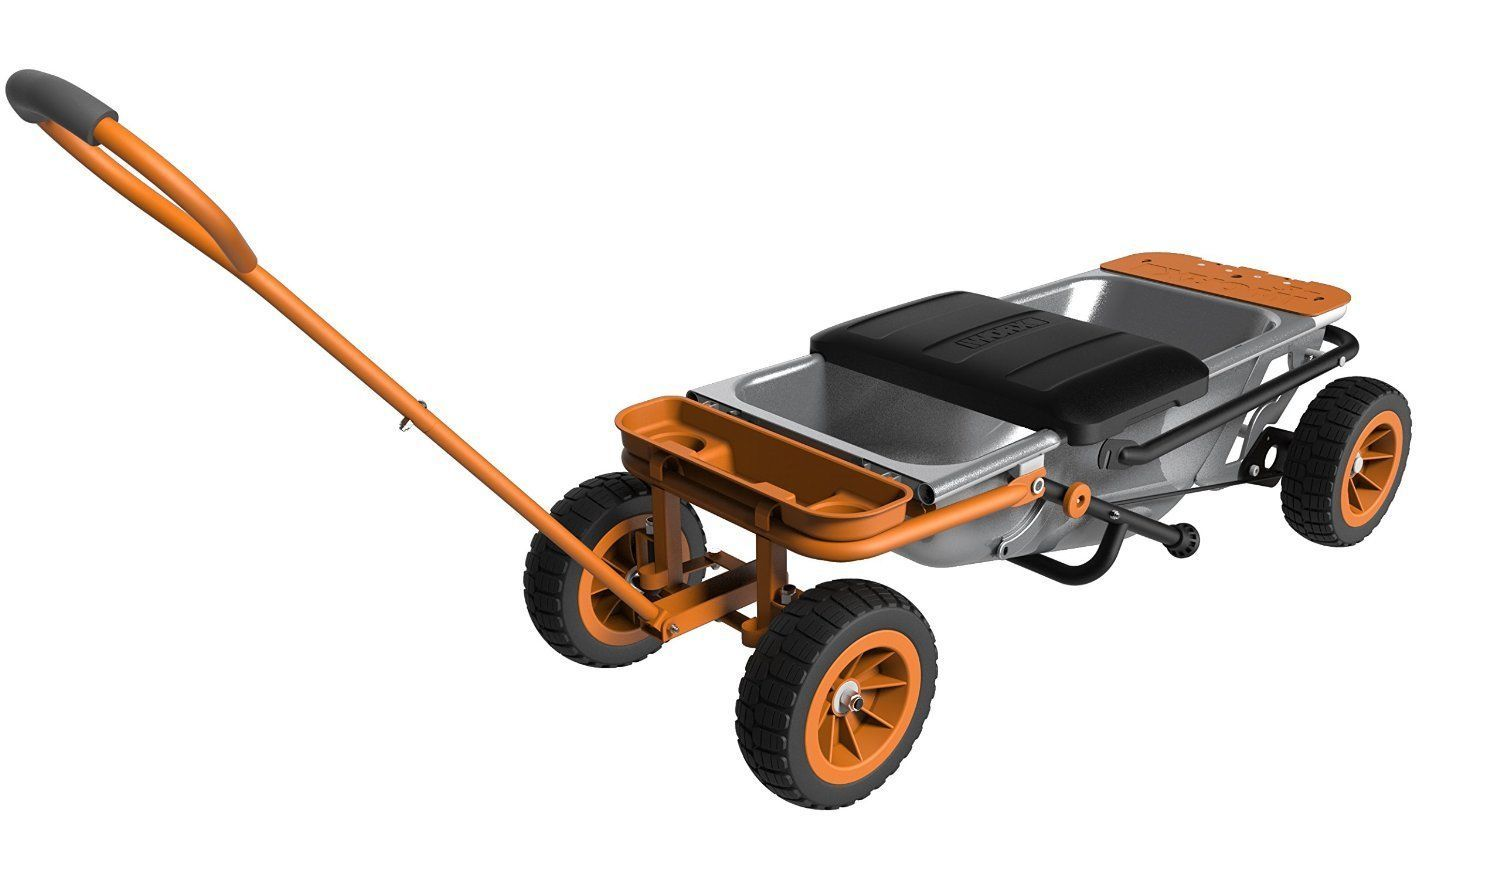 WORX WA0228 AeroCart Wagon Kit Lawn Garden Utility Wheelbarrow Dolly Cart Wagon